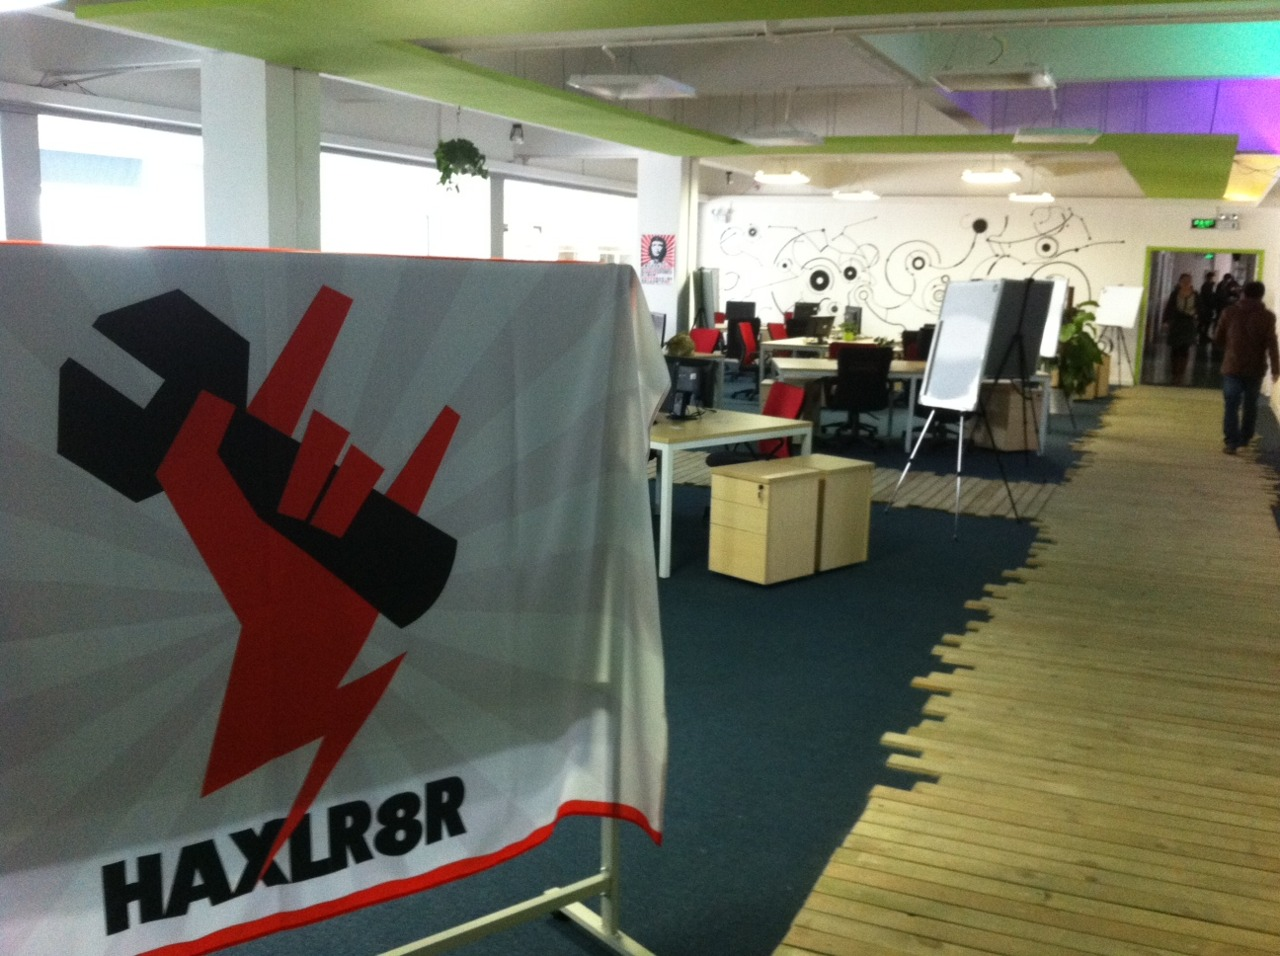 Haxlr8r in Shenzhen, China